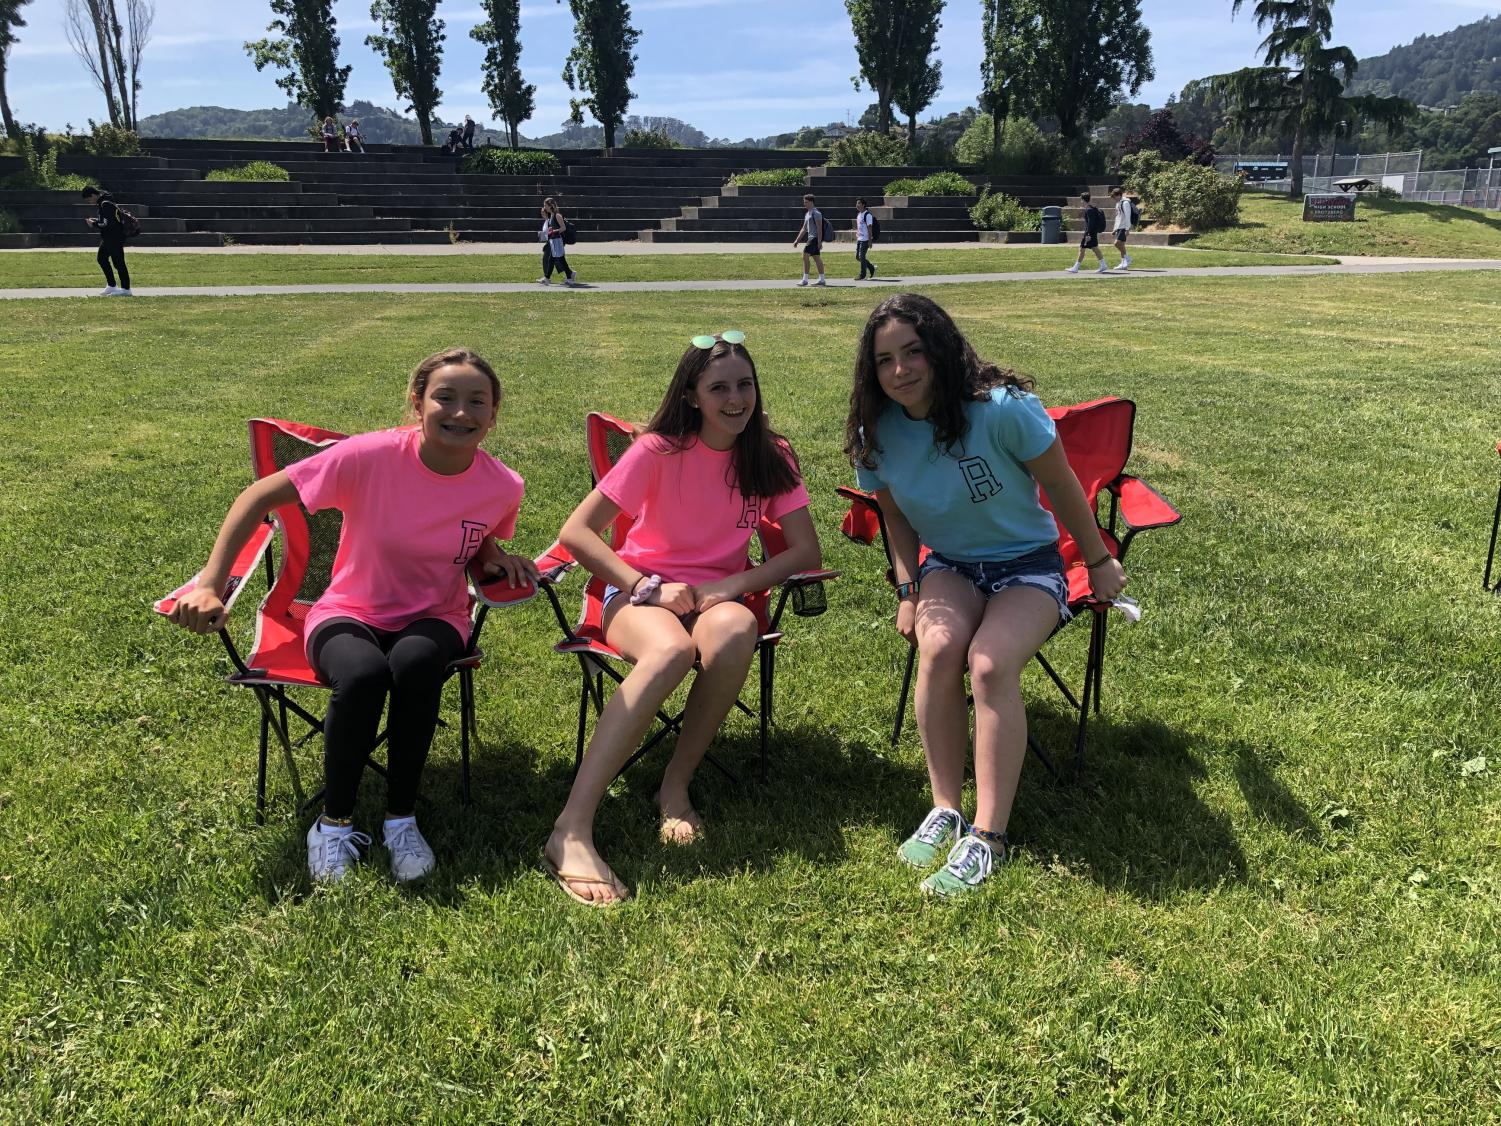 Sitting together in lawn chairs, Leadership students host